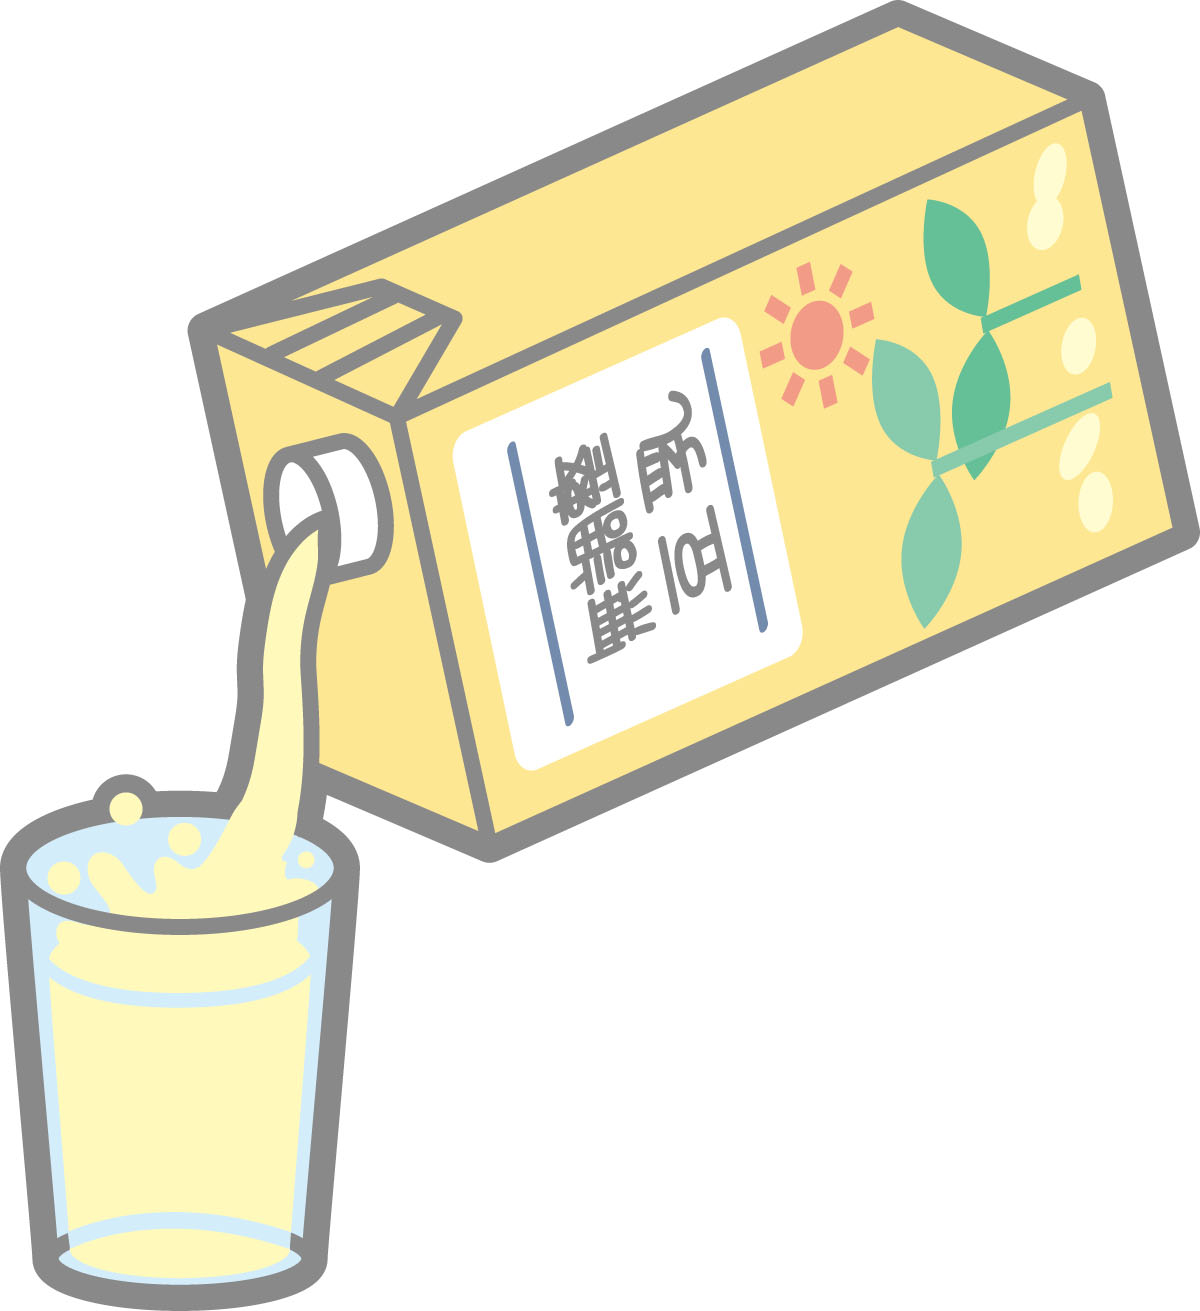 no-adjustment-soy-milk-drink-00